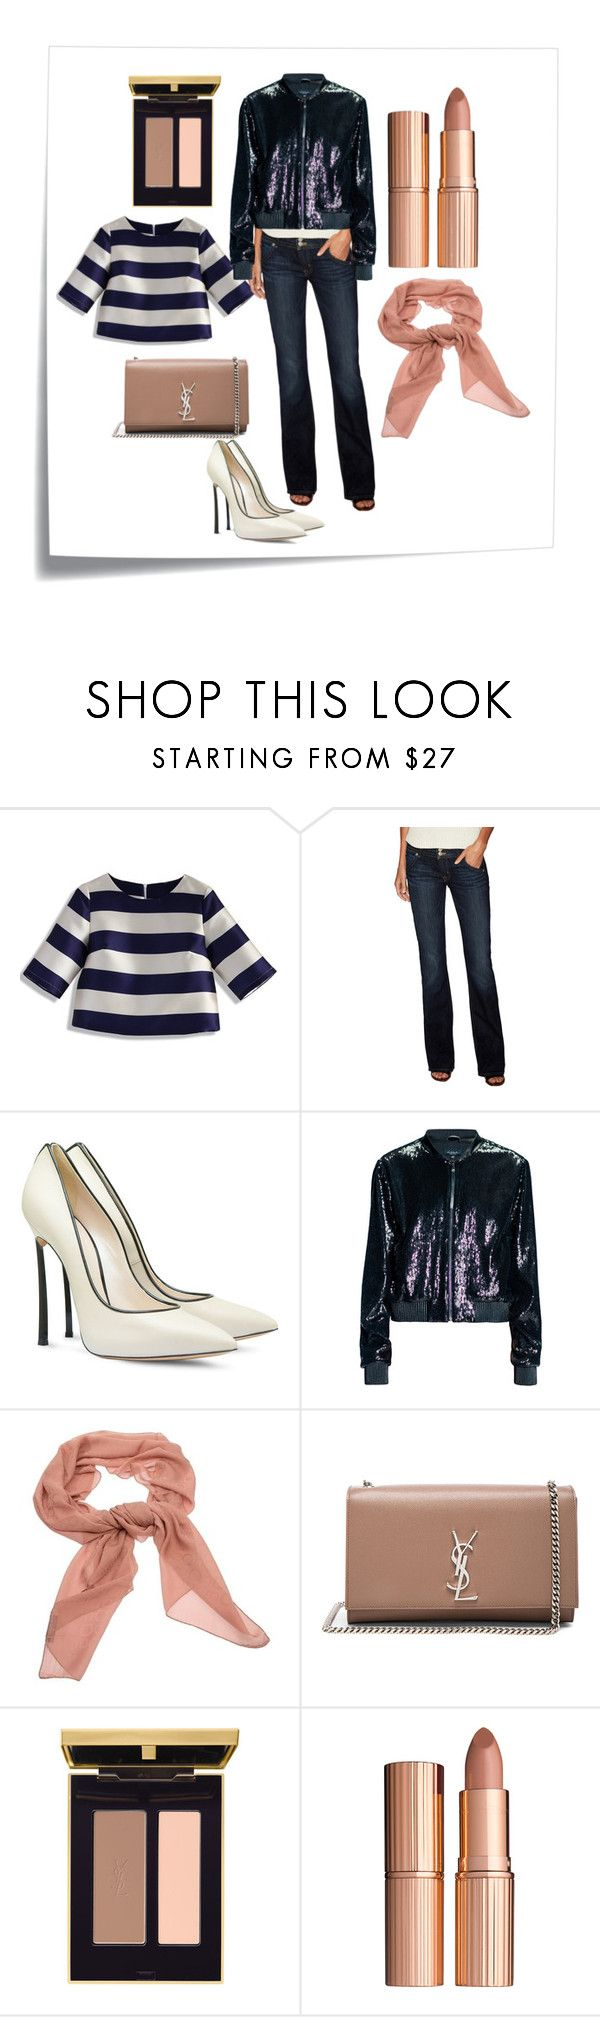 """""""simple"""" by slavulienka on Polyvore featuring Post-It, Chicwish, Hudson Jeans, Casadei, Leka, Salvatore Ferragamo, Yves Saint Laurent and Charlotte Tilbury"""